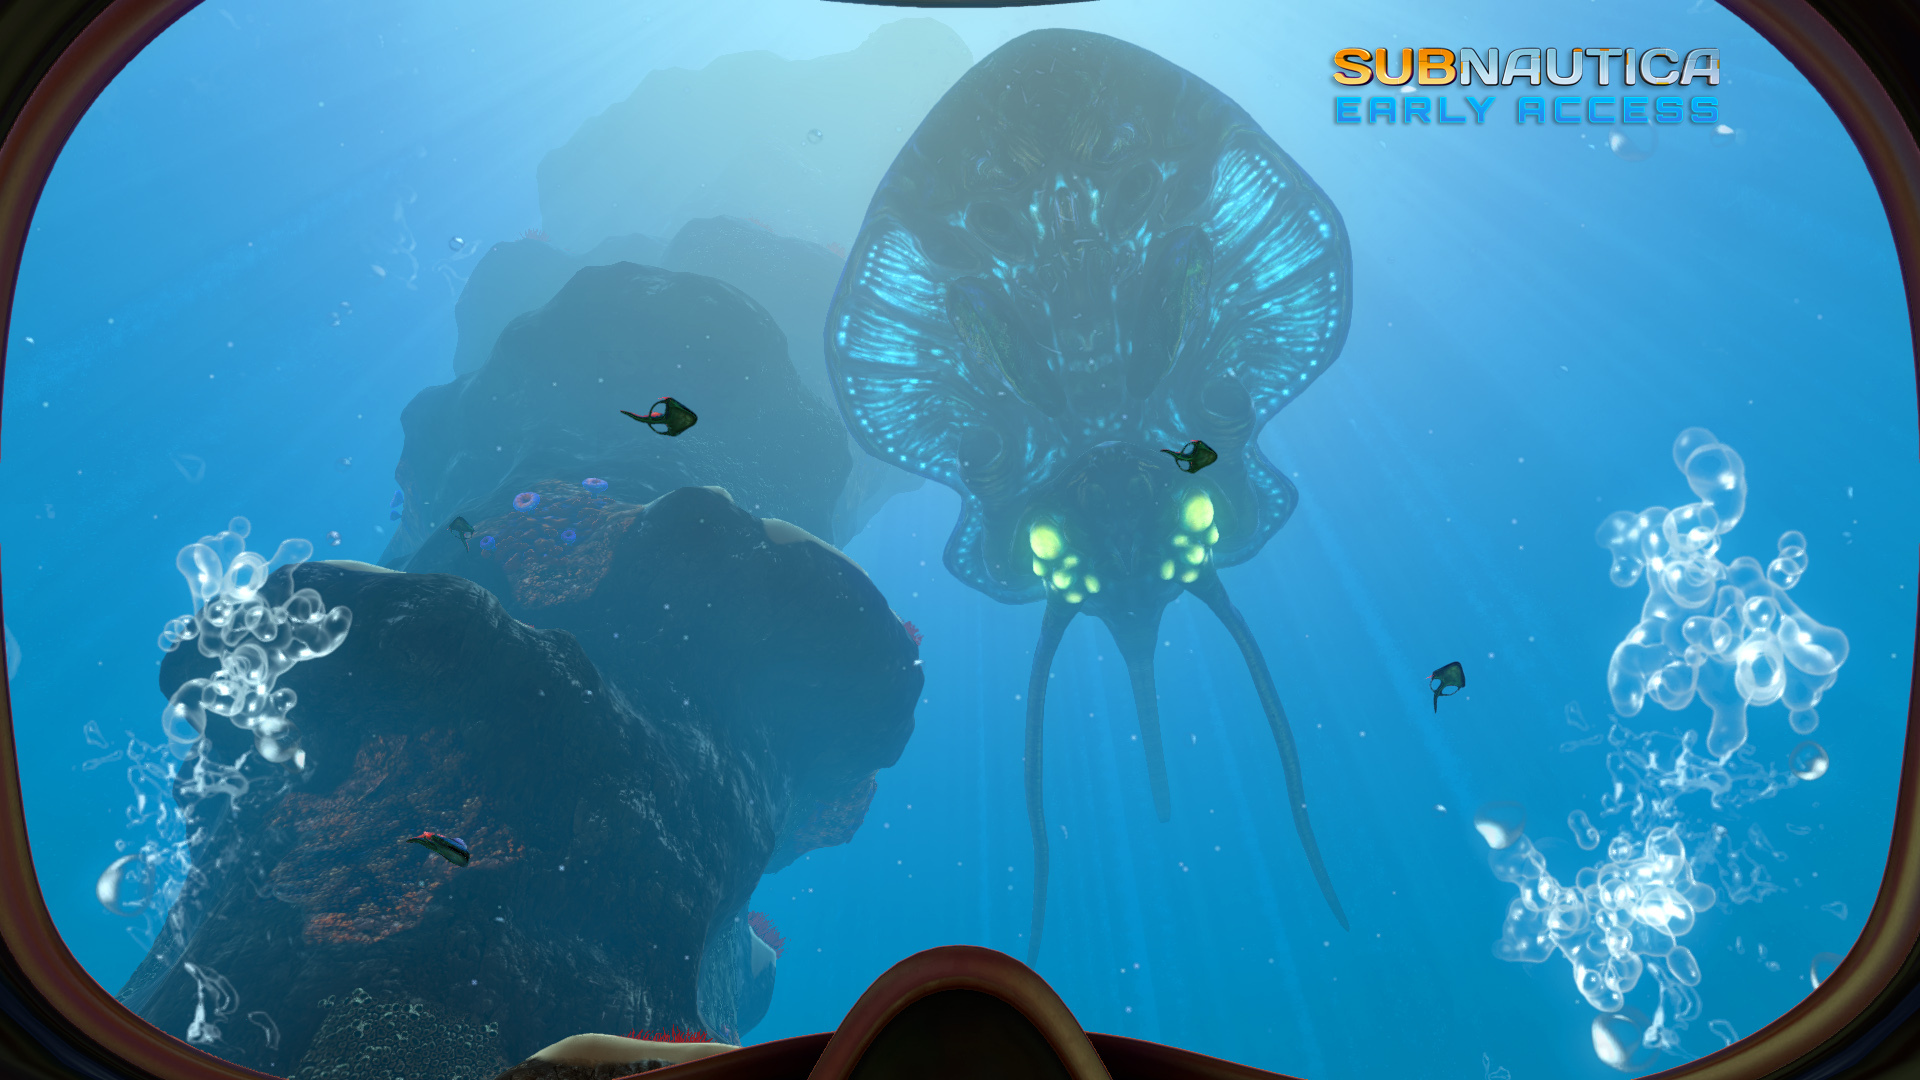 Subnautica is being developed for Xbox One